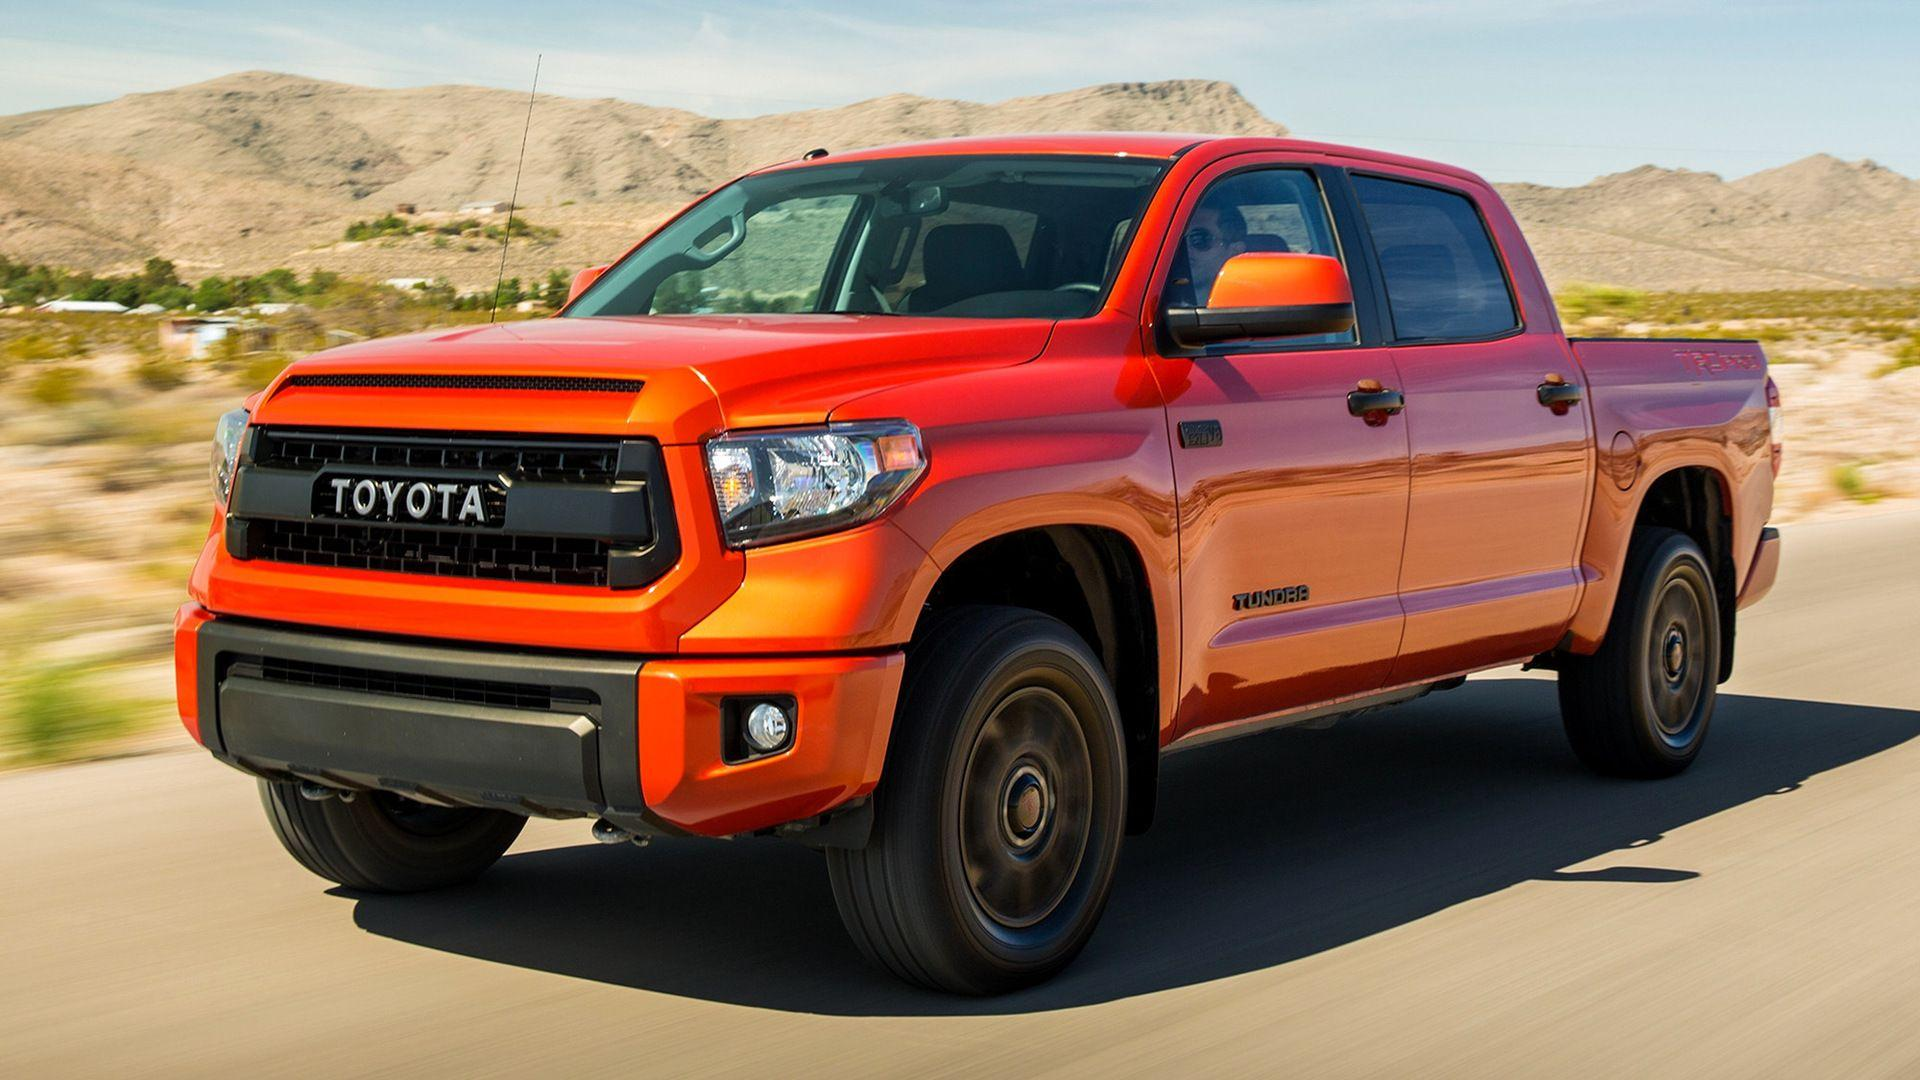 TRD Toyota Tundra Double Cab Pro (2014) Wallpapers and HD Images ...